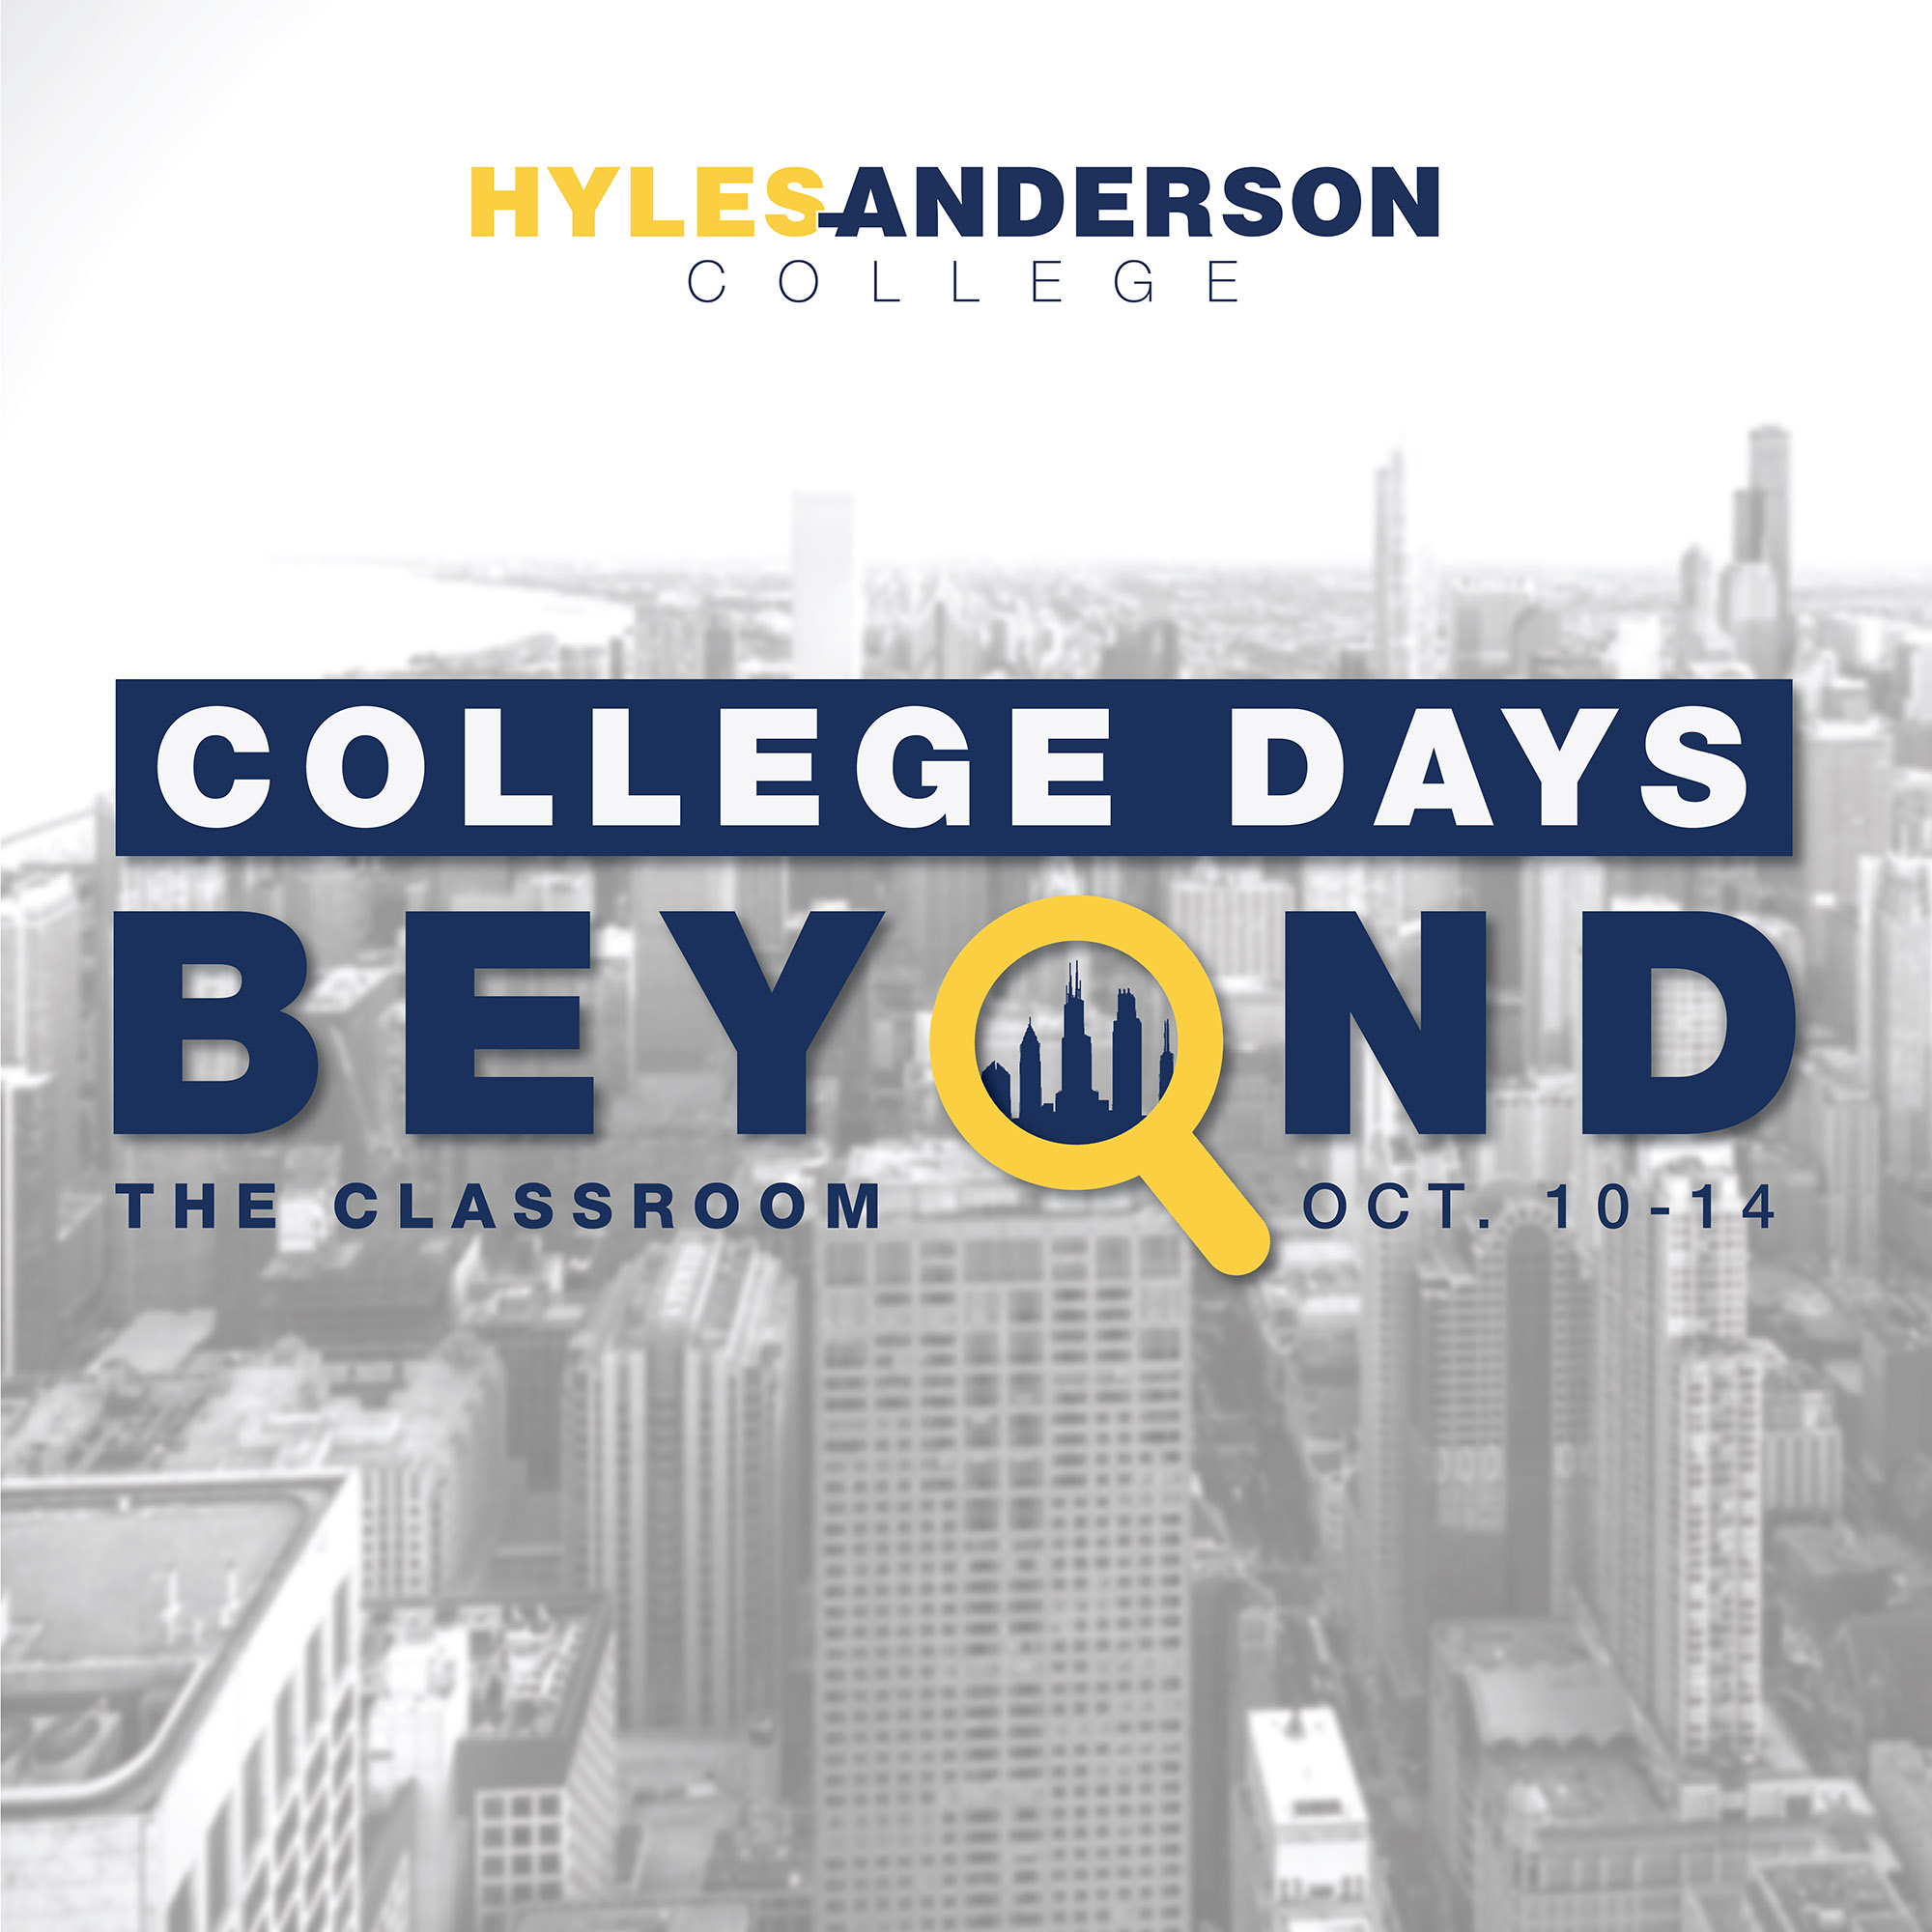 Hyles-Anderson College - Purpose, Passion, Commitment